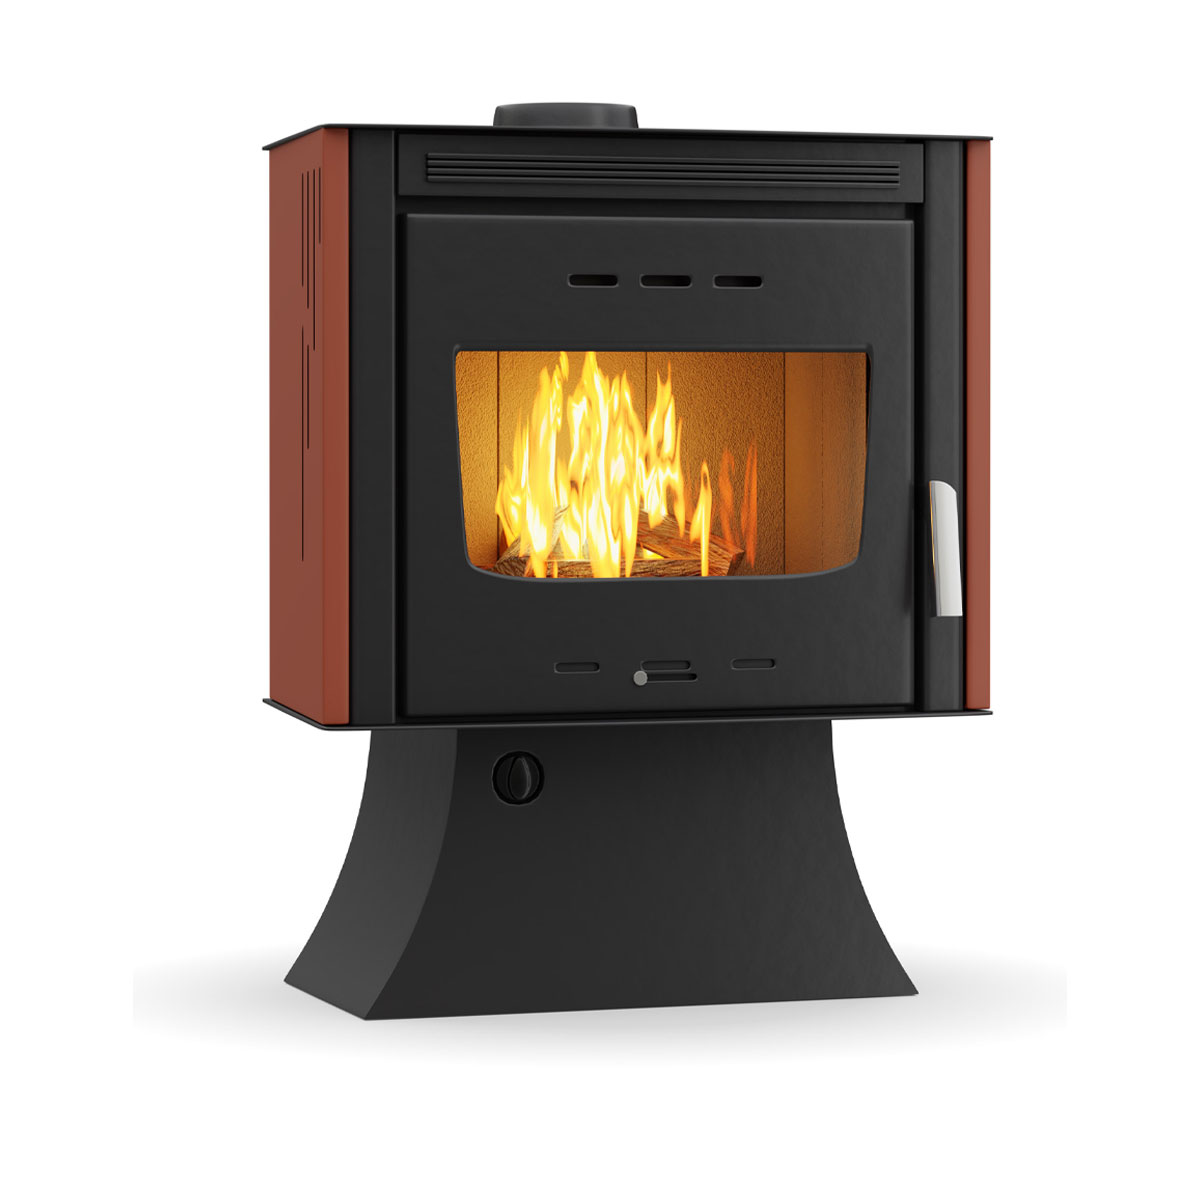 THERMIKI Wood Stove Boiler  100 Aero + Fan Black